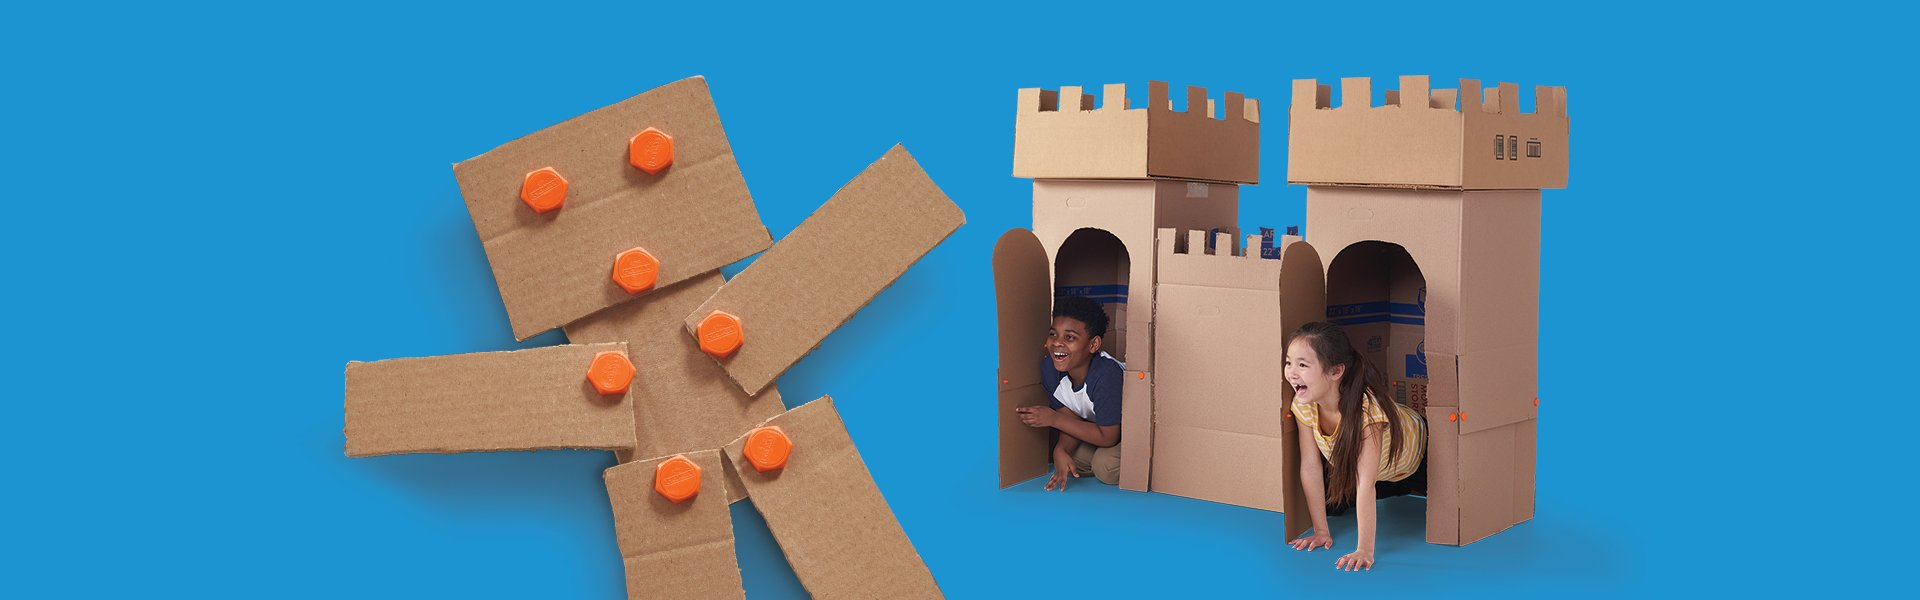 kids building with cardboard boxes